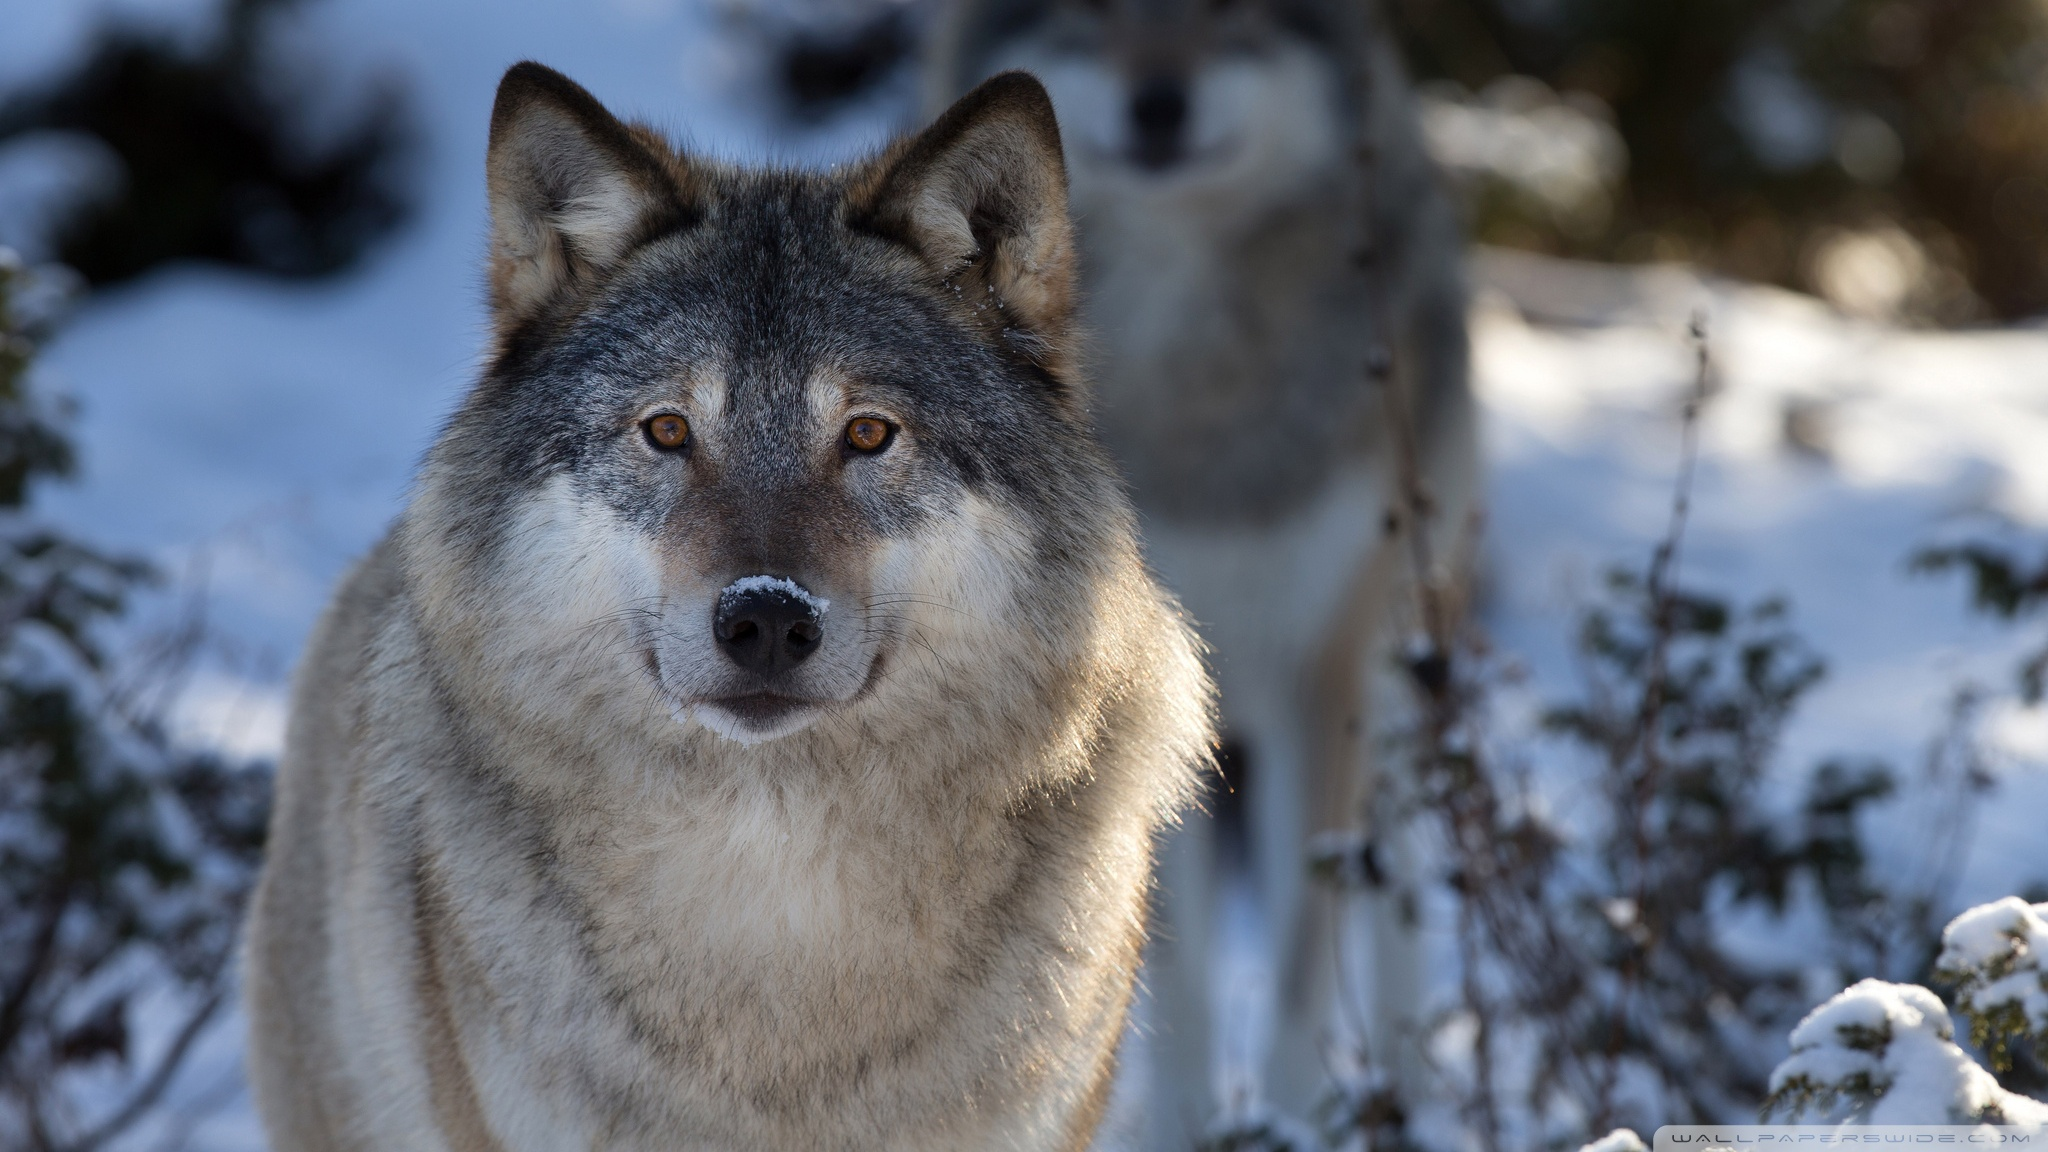 wolf wallpapers ndash animal - photo #2